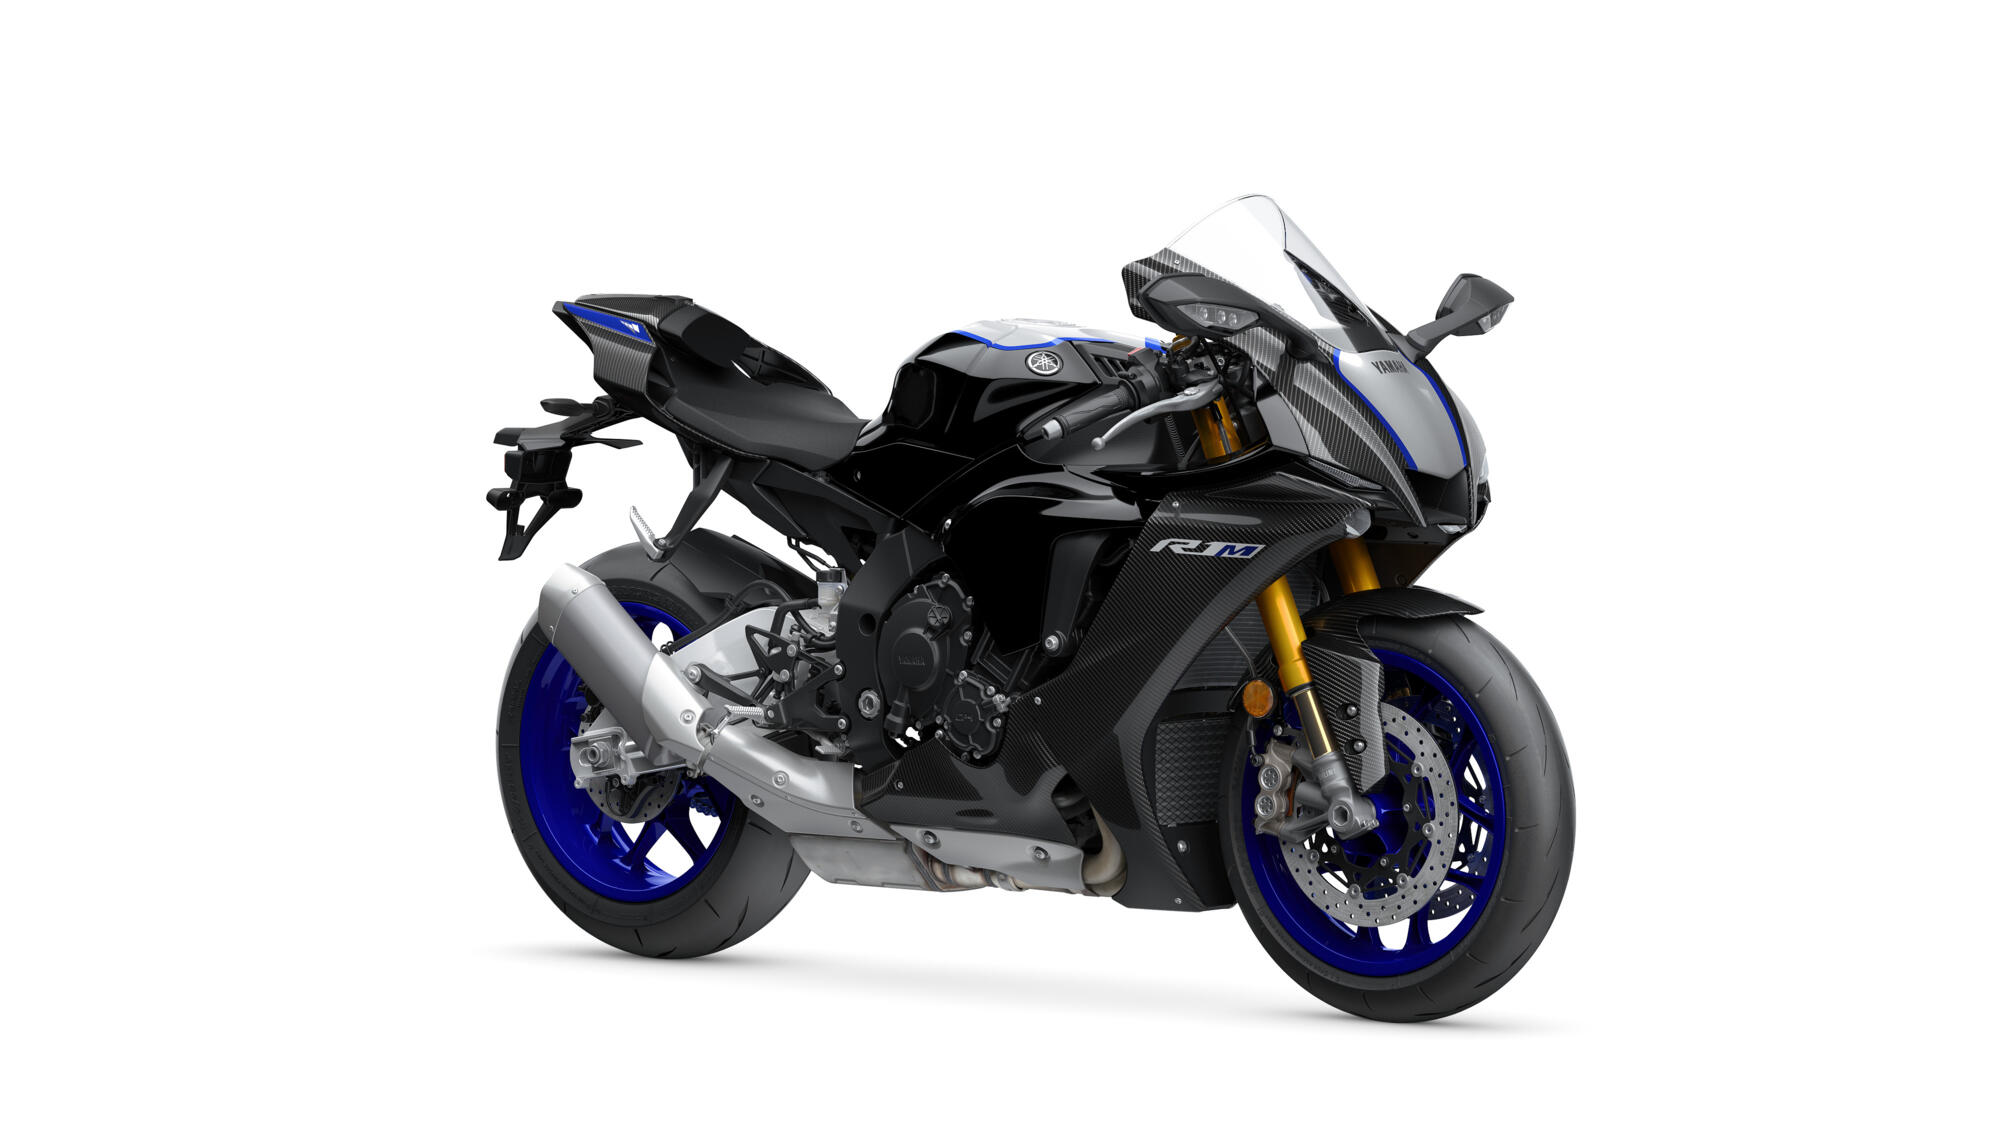 Yamaha Yzf R1 Electrical System And Wiring Diagram Share The